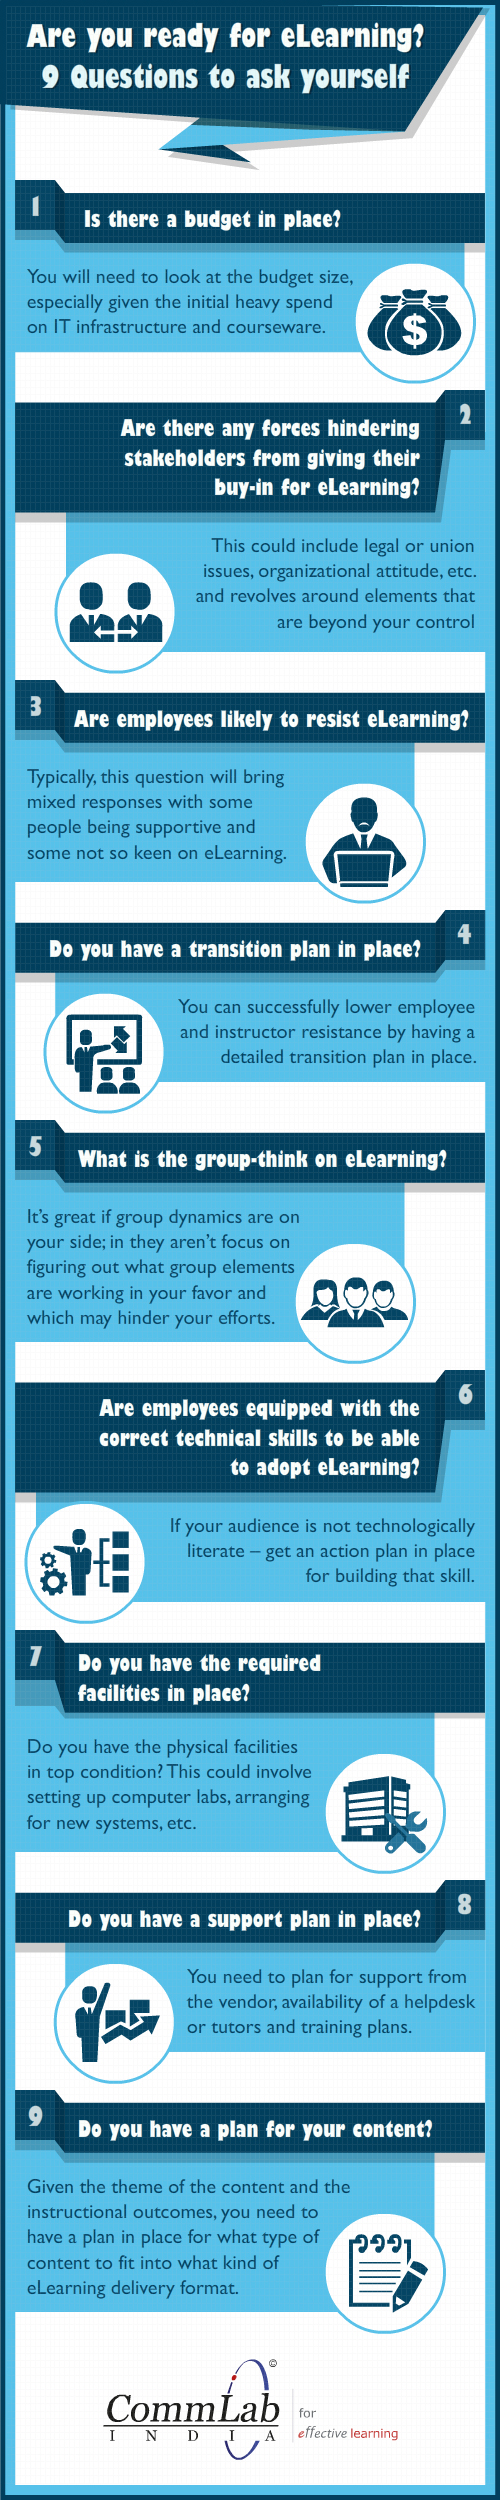 Are you Ready for E-learning? – 9 Questions to Ask Yourself